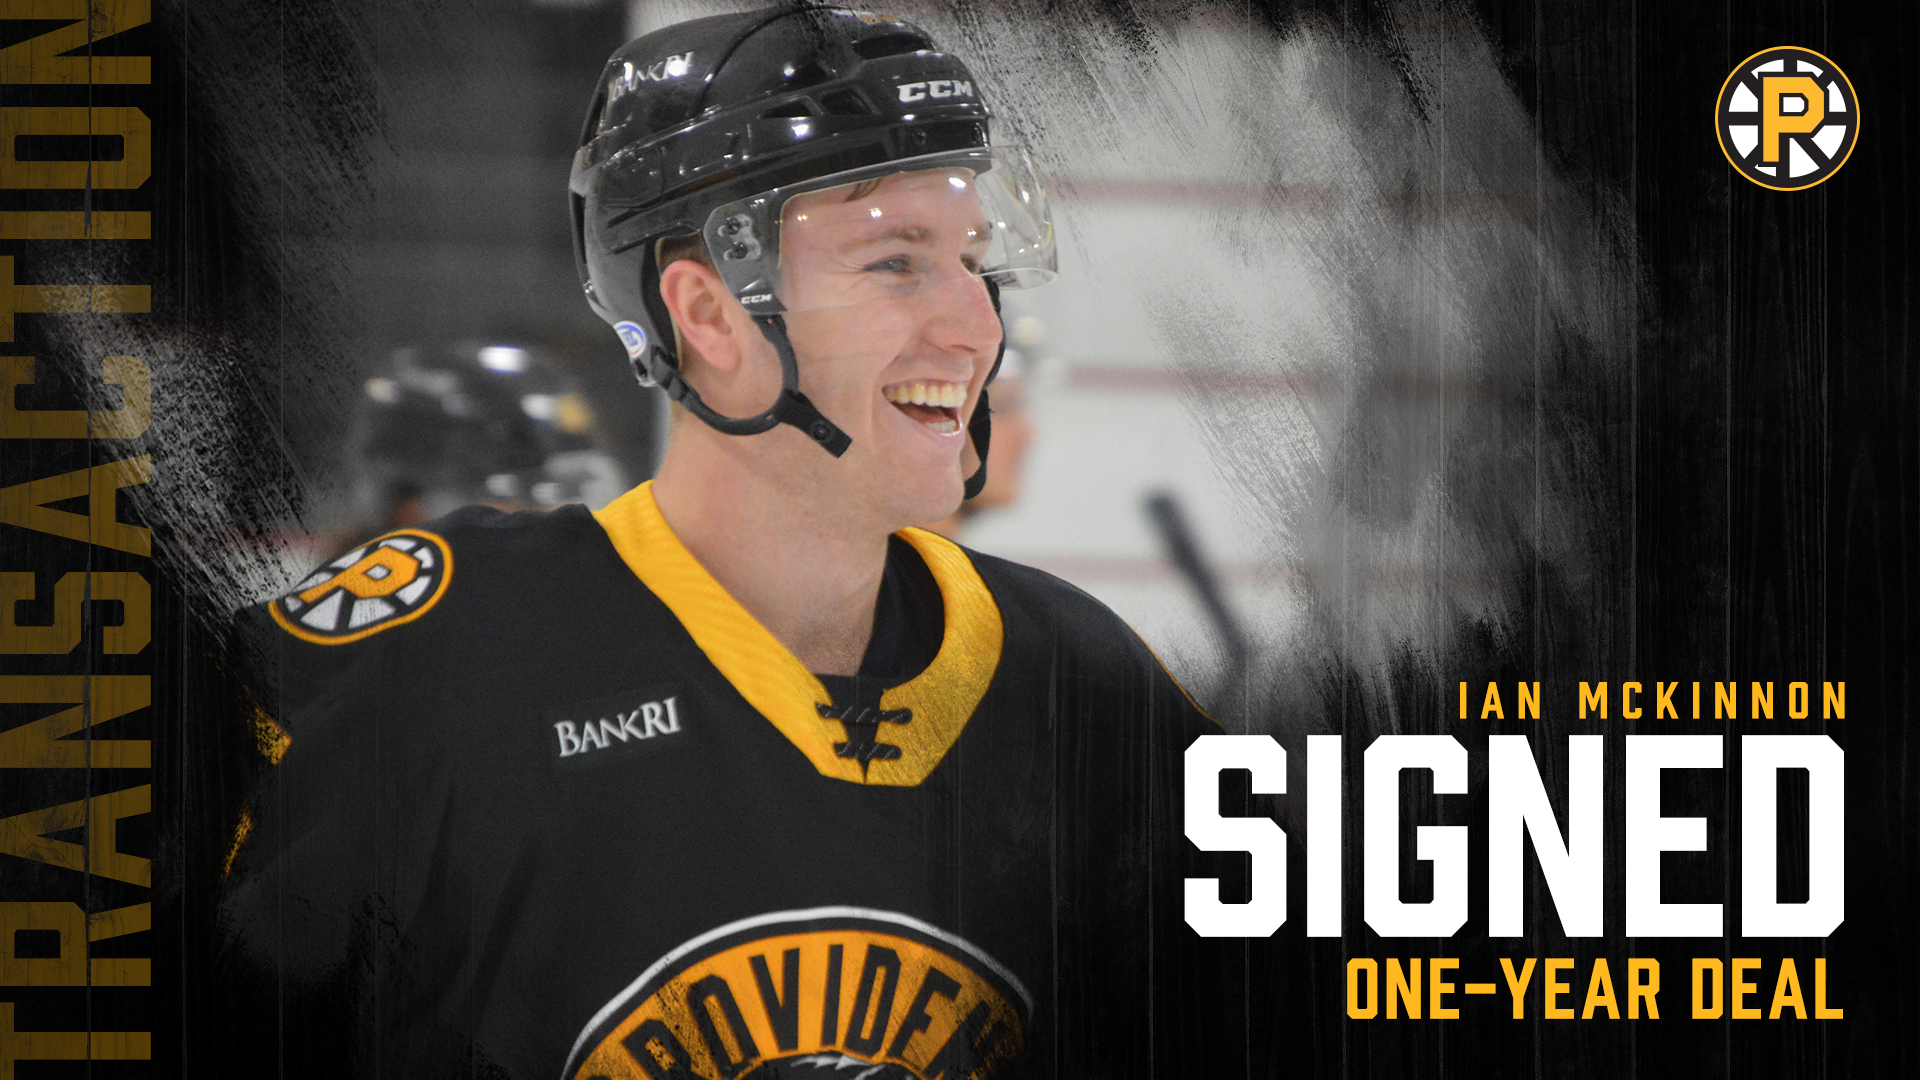 PROVIDENCE BRUINS SIGN IAN MCKINNON TO ONE-YEAR AHL CONTRACT